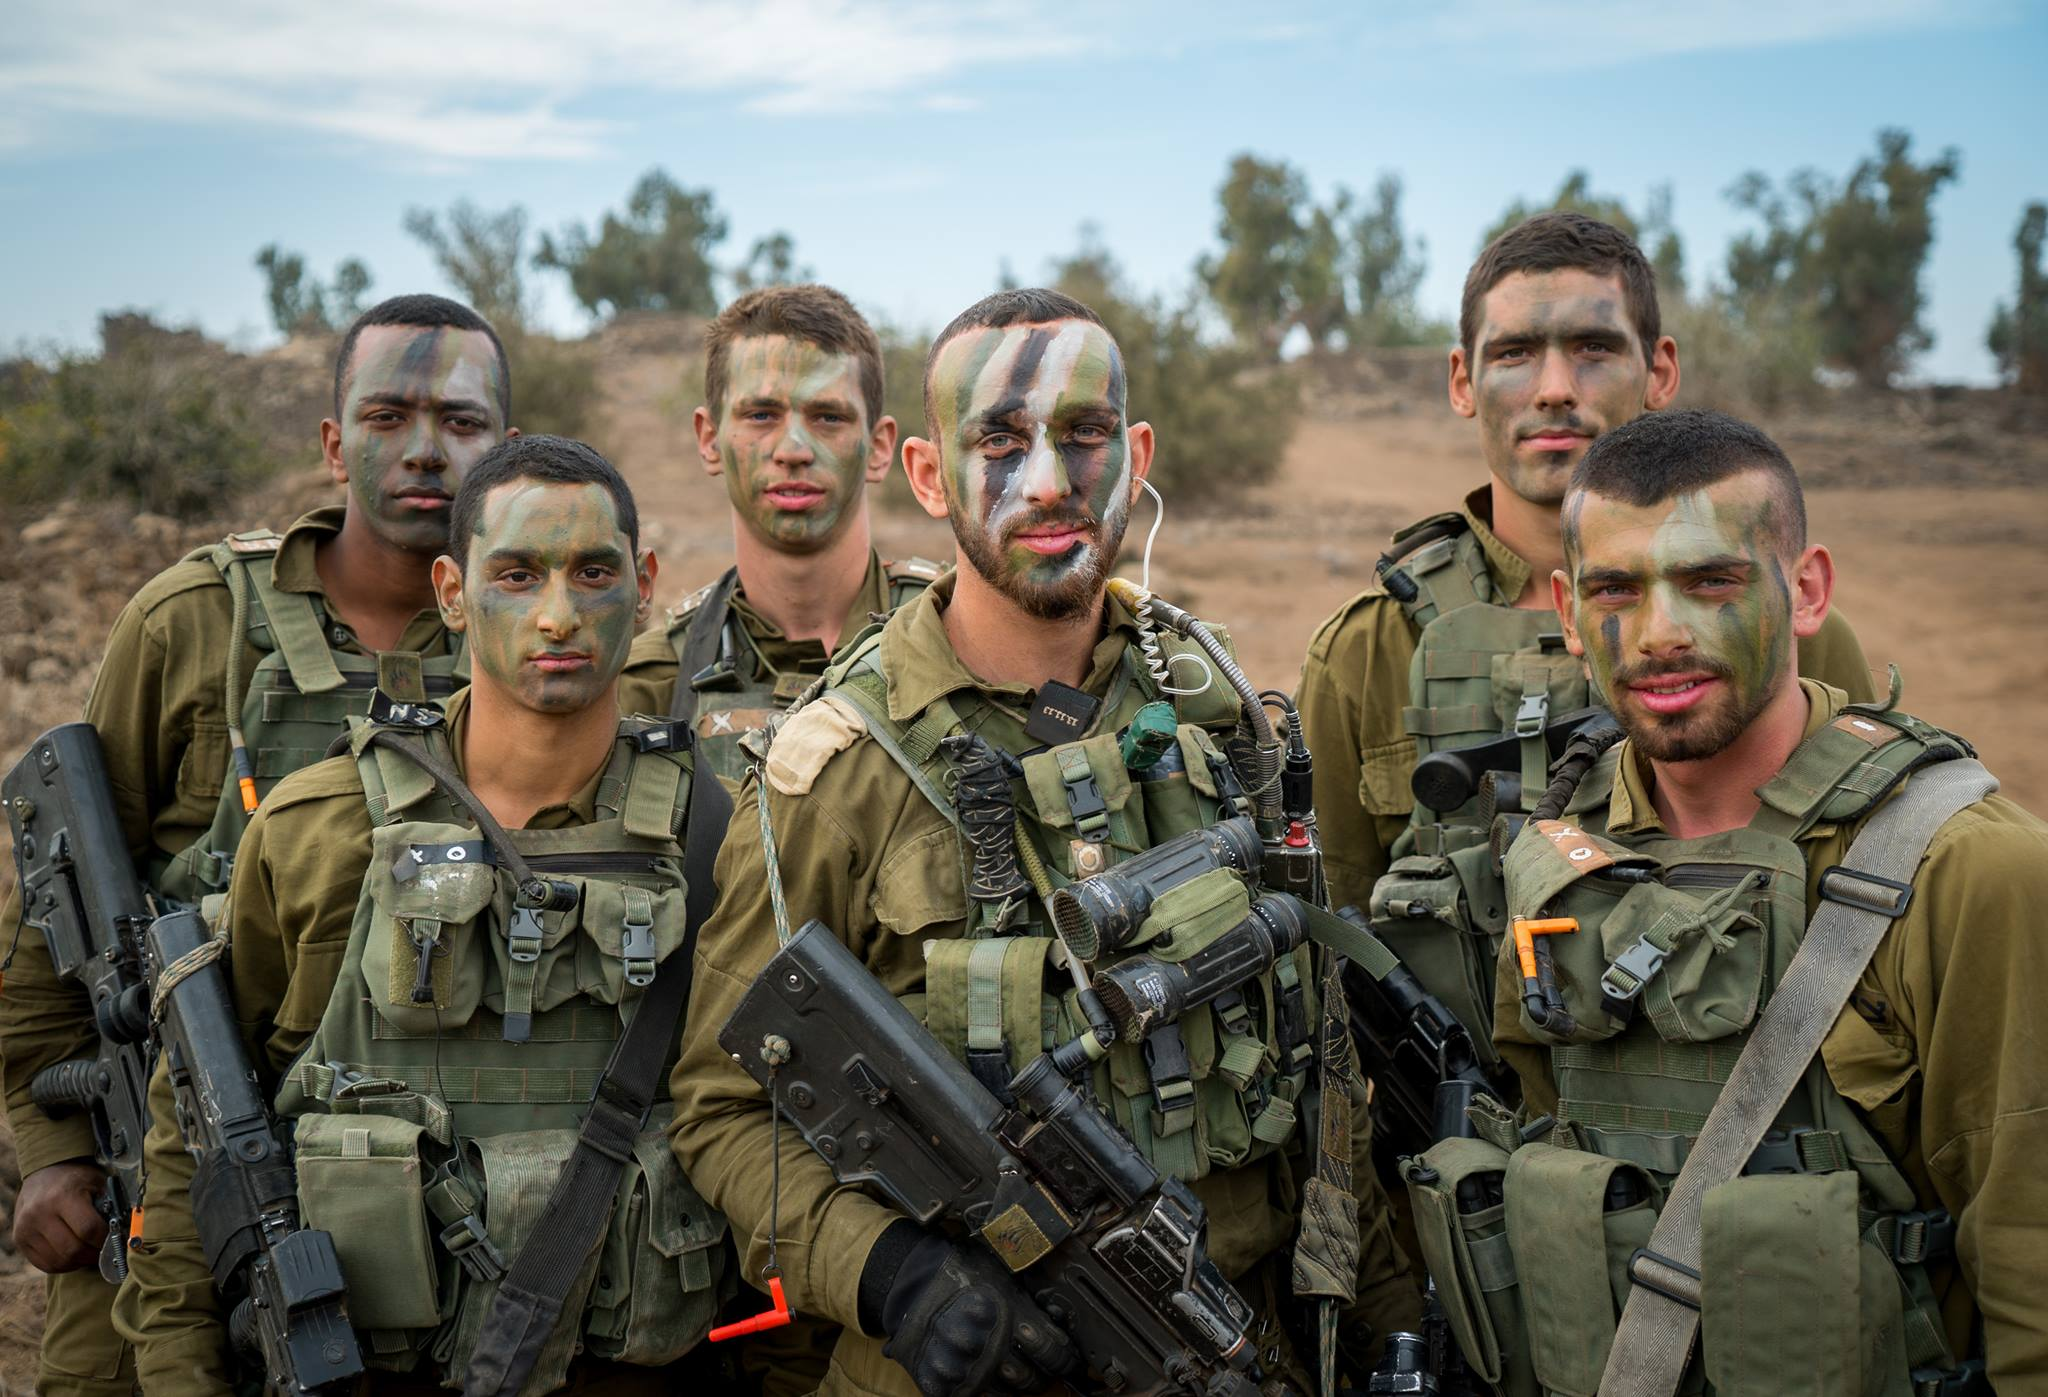 A group of IDF soldiers with full gear and war painted faces